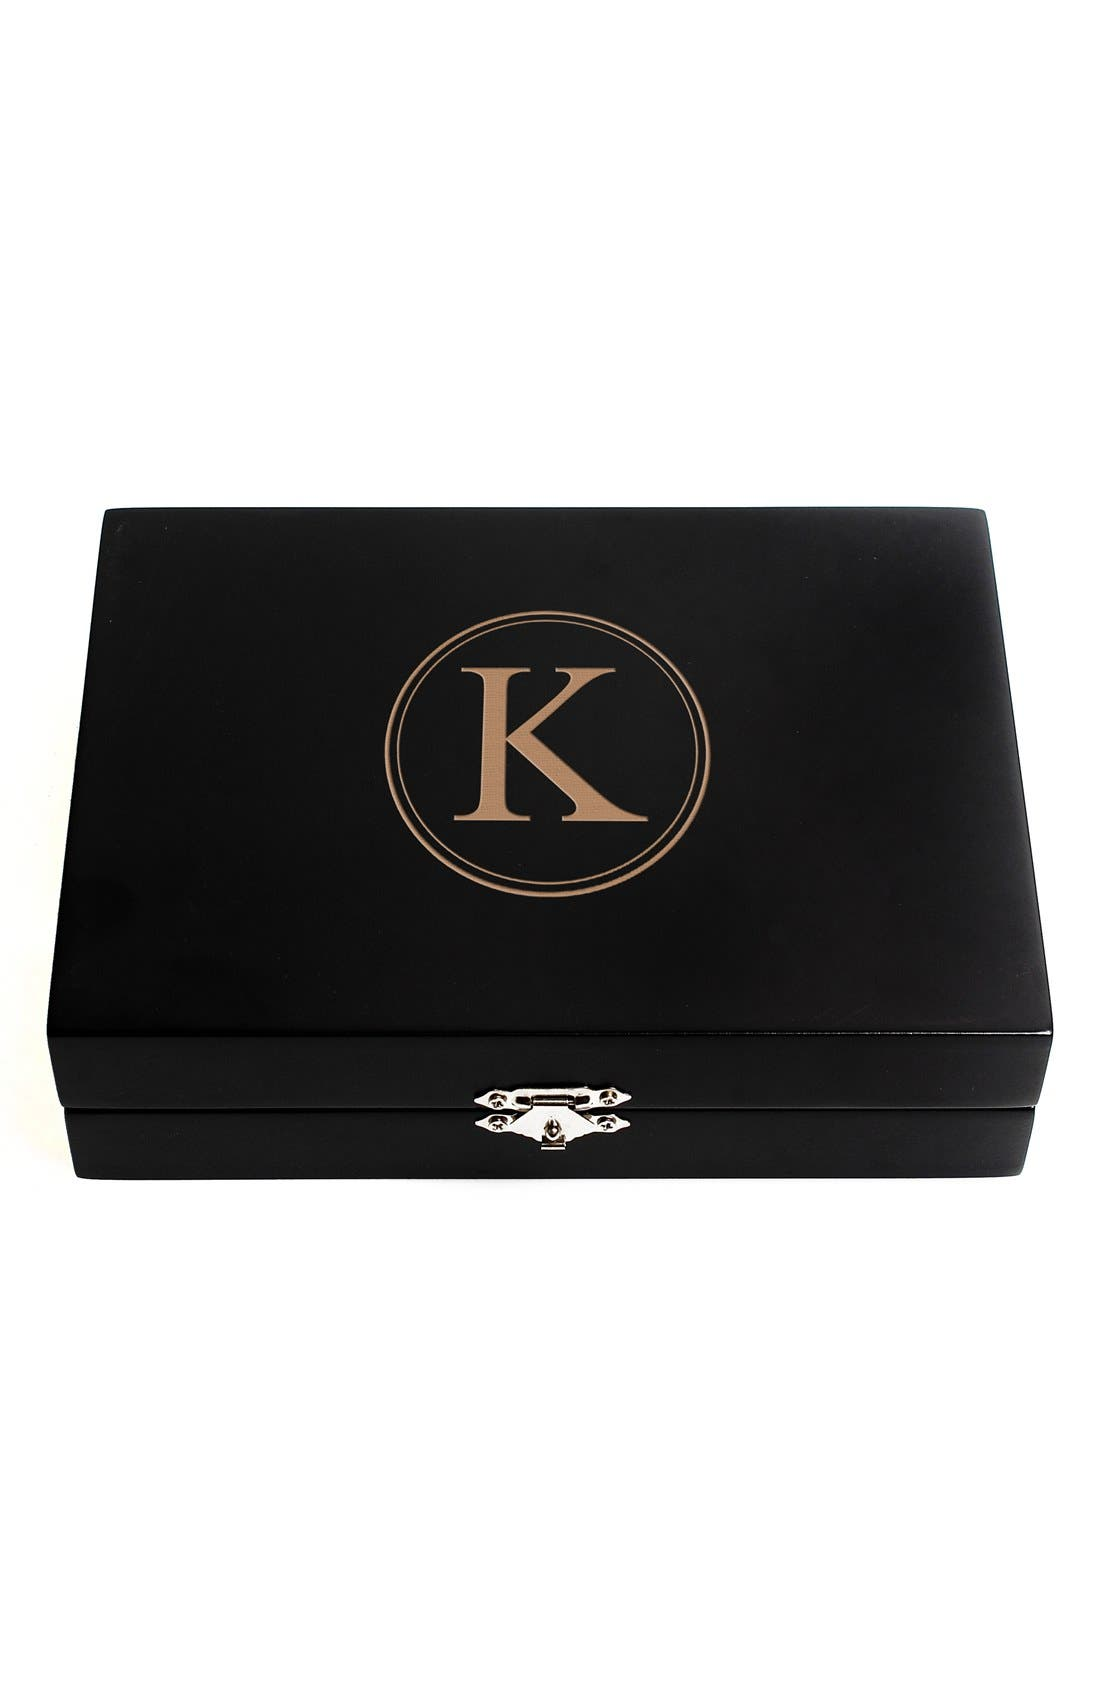 Monogram Wooden Jewelry Box,                             Main thumbnail 13, color,